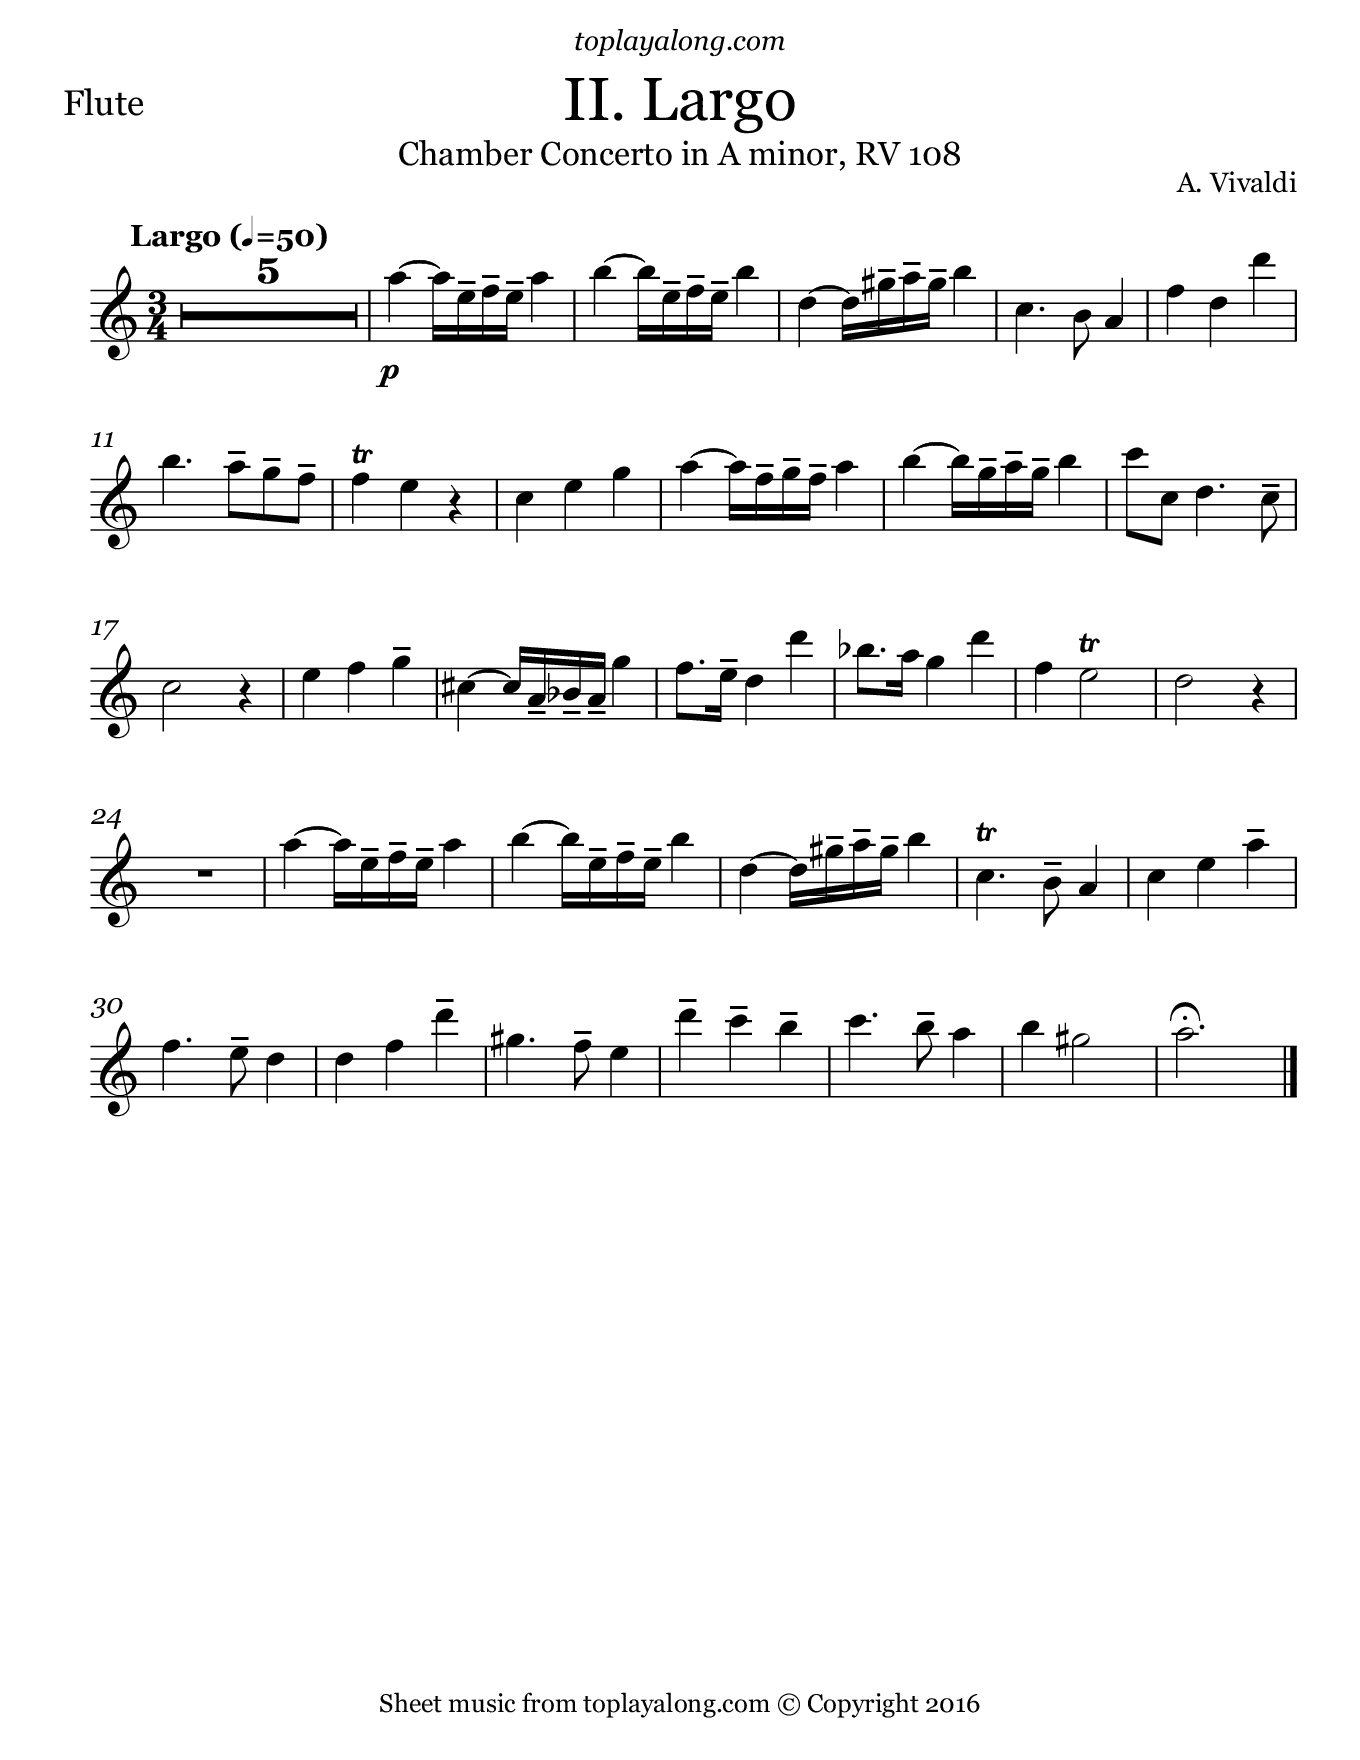 Chamber Concerto in A minor (II. Largo) by Vivaldi. Sheet music for Flute, page 1.